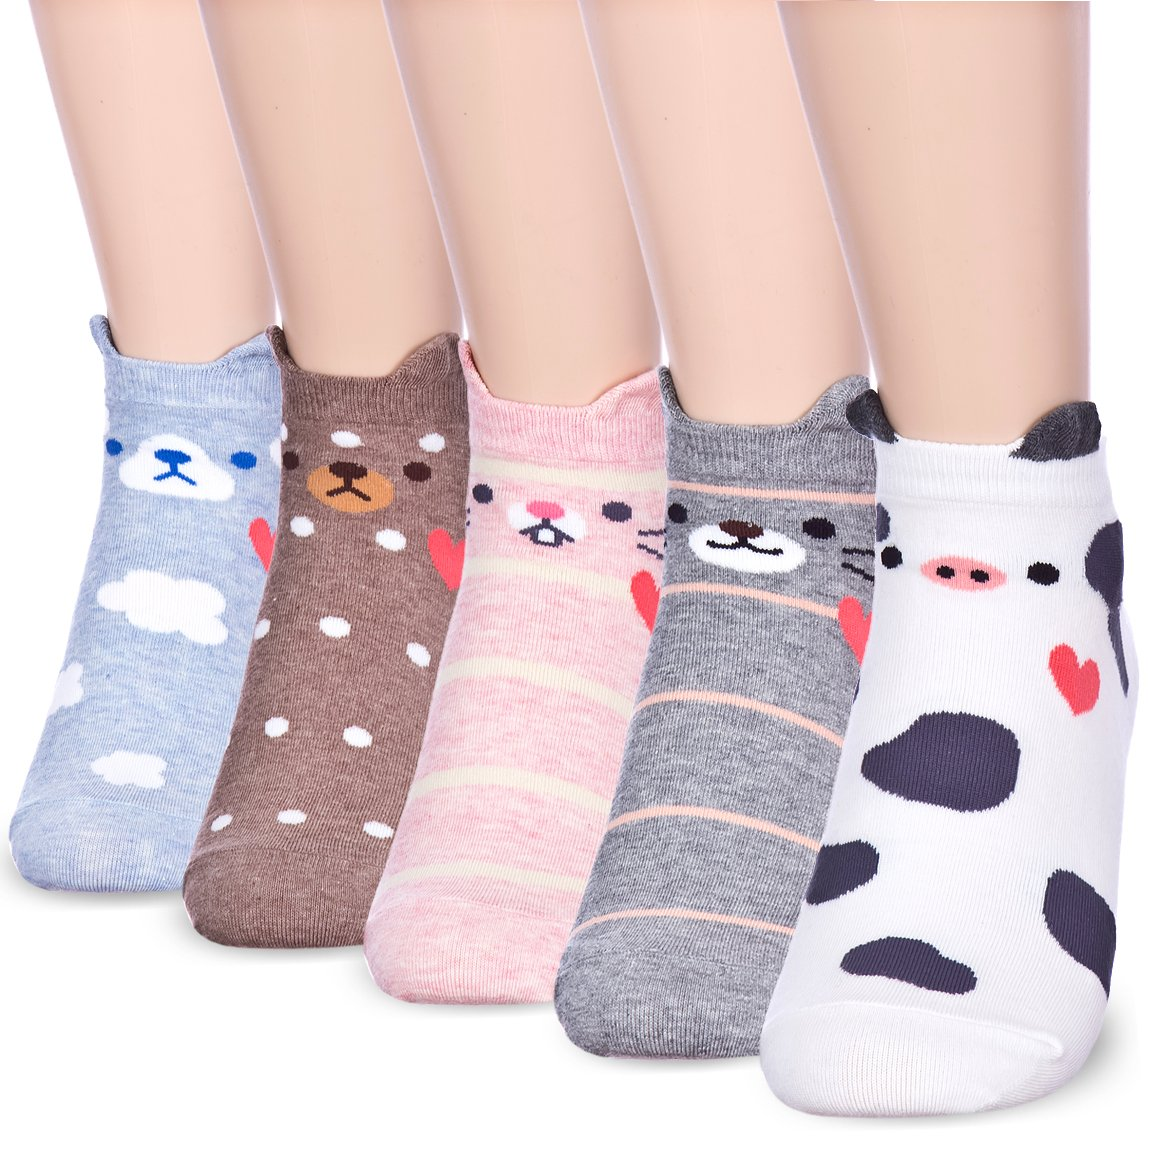 Fall in Love Animal Charater Casual Sneakers Socks (Onesize, 5 Pairs) by Dani's Choice (Image #1)